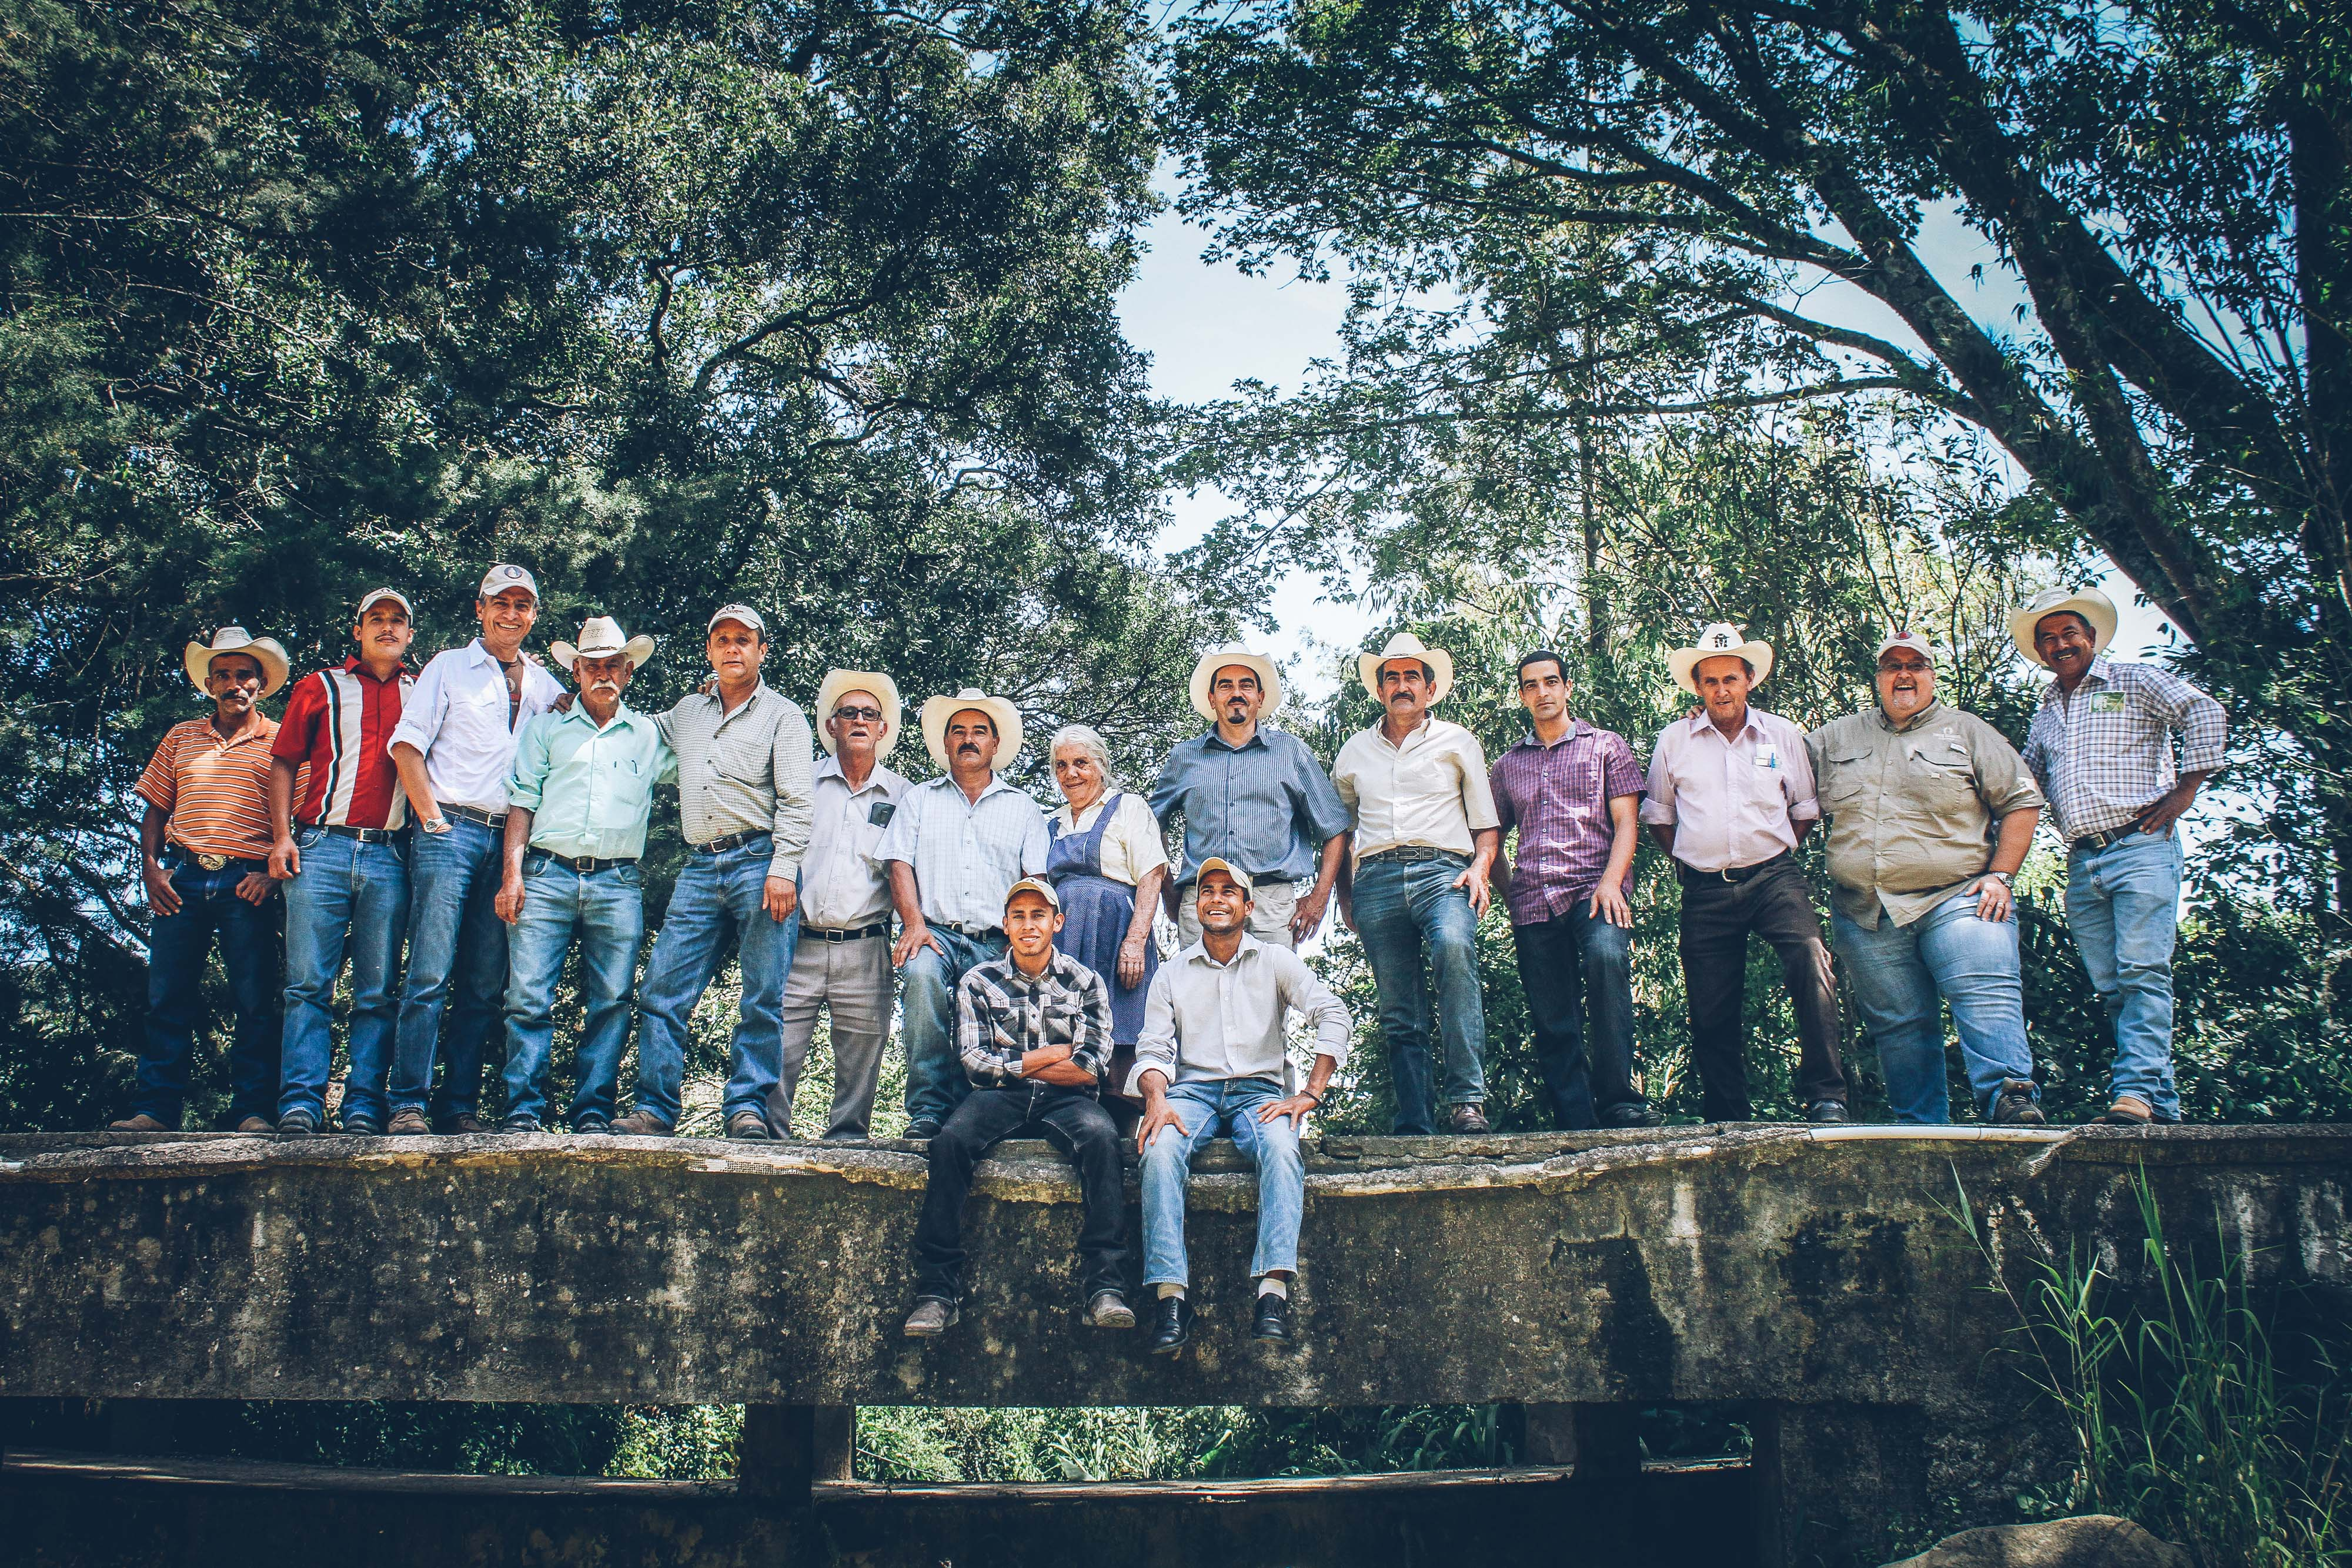 Here are some of the Thrive Farmers behind Thrive Farmers coffee.